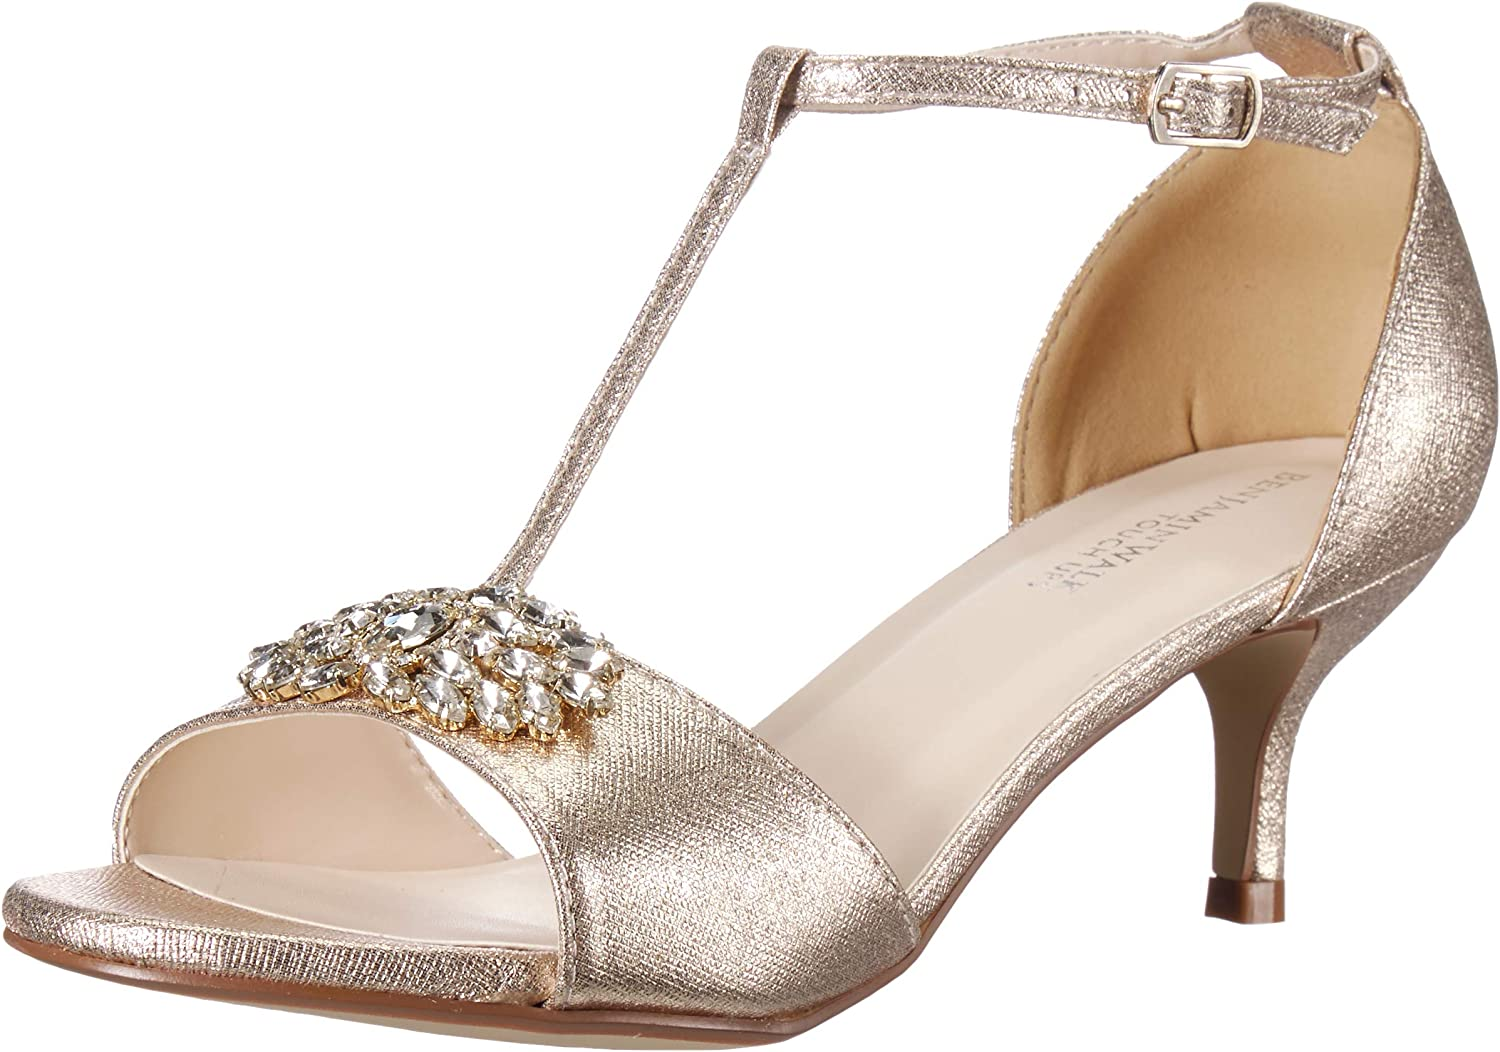 Details about  /Touch Ups Ophelia Women/'s Sandal